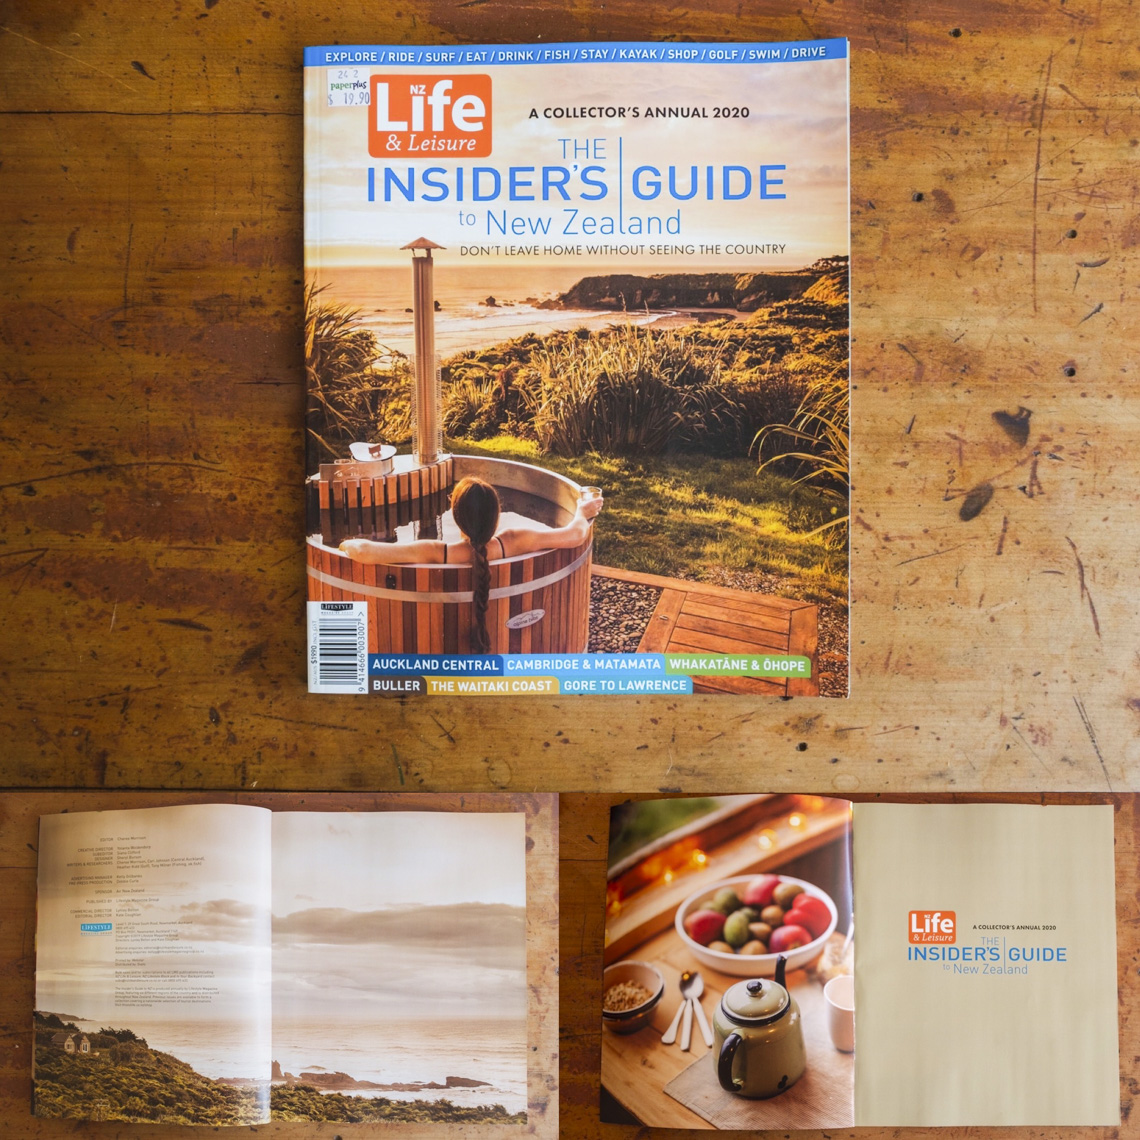 NZ Life and Leisure Front Cover -2020 Insider